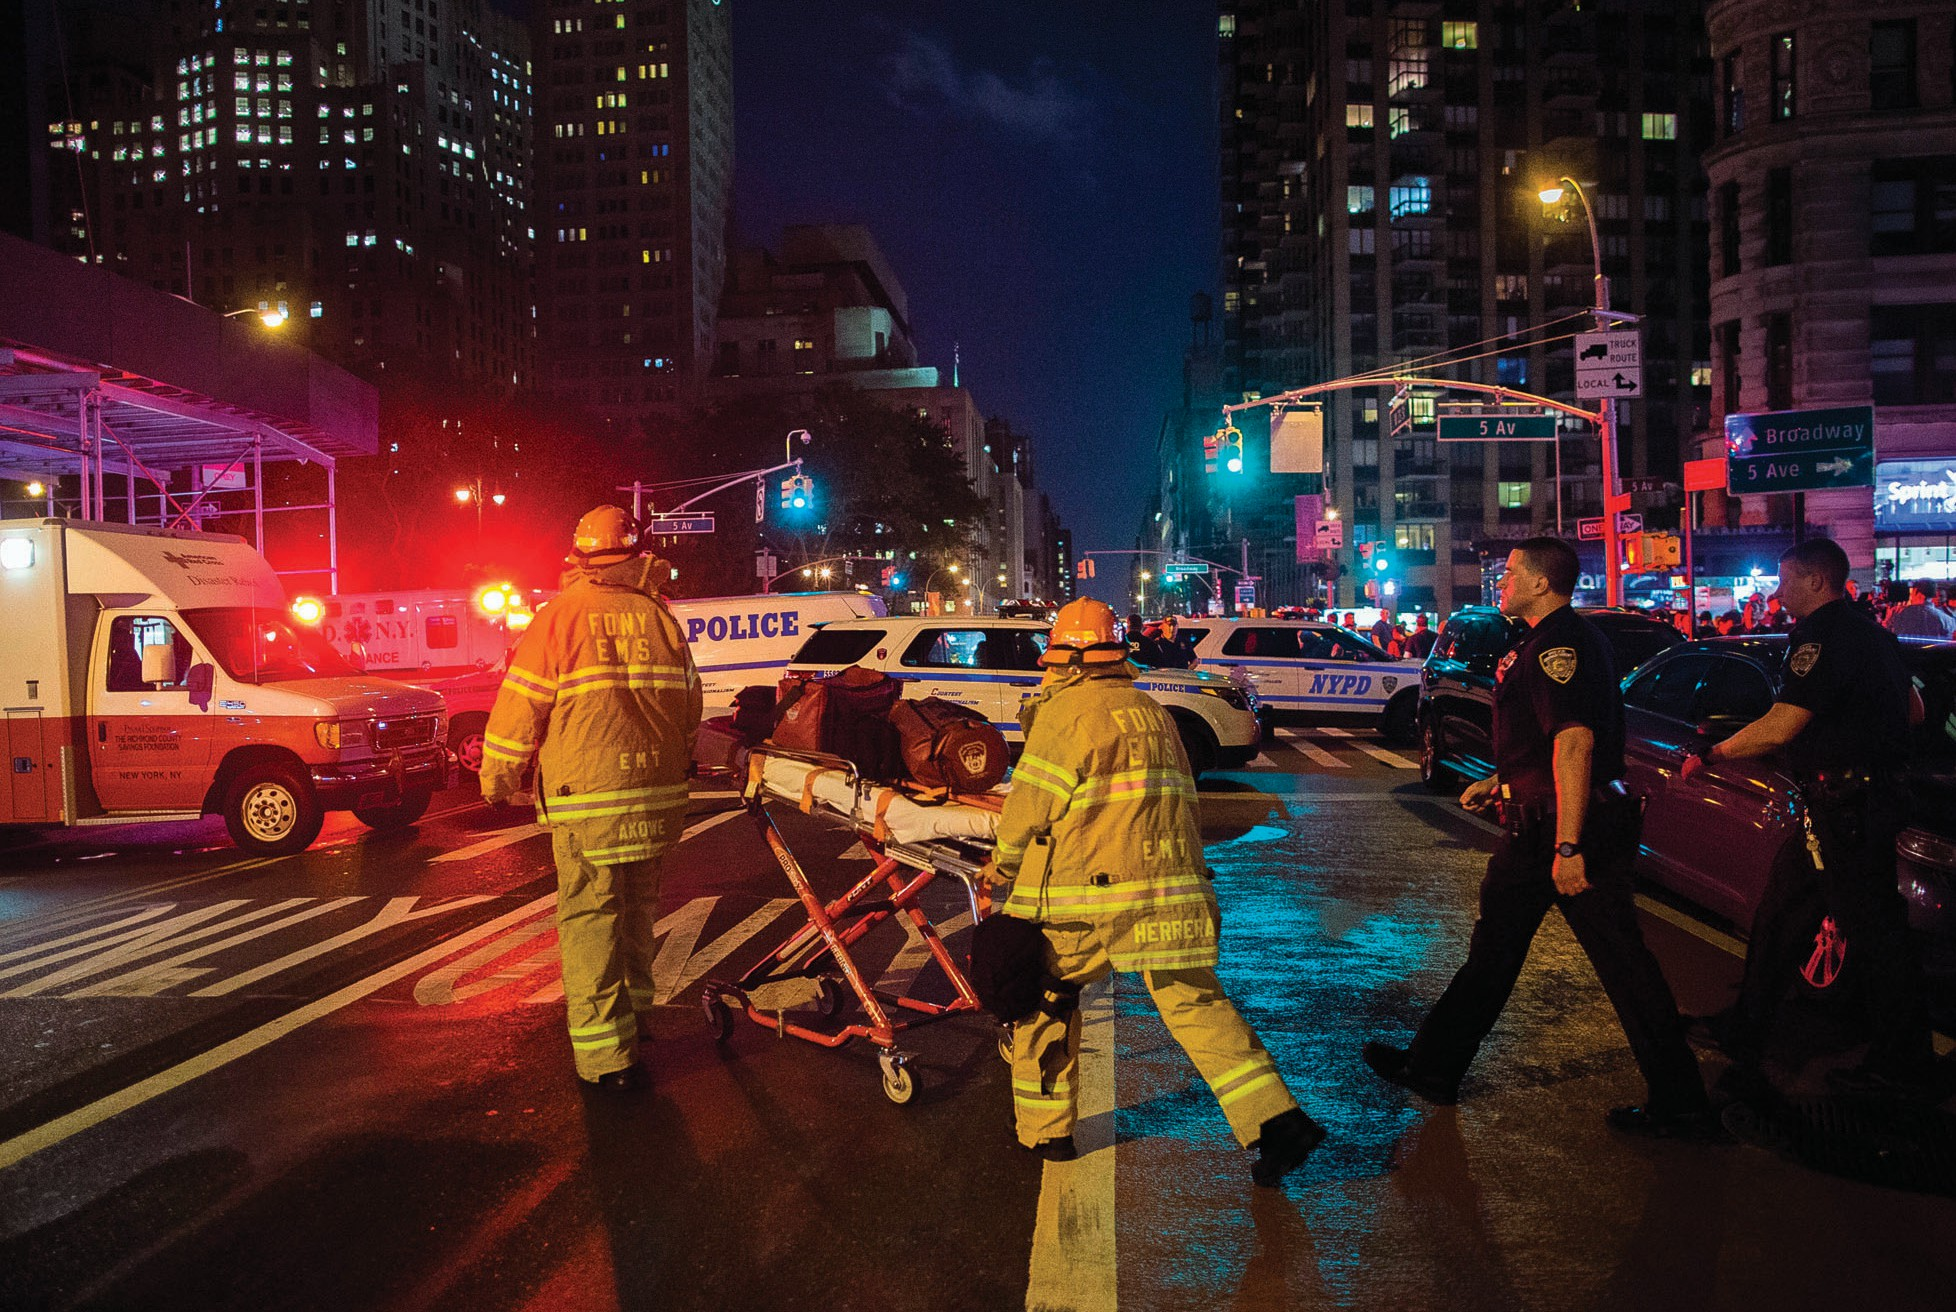 In this Sept. 17 file photo, first responders work near the scene of an explosion in Manhattan's Chelsea neighborhood in New York. On Friday, a New Jersey Muslim religious leader spoke against violence like the New York bombings.